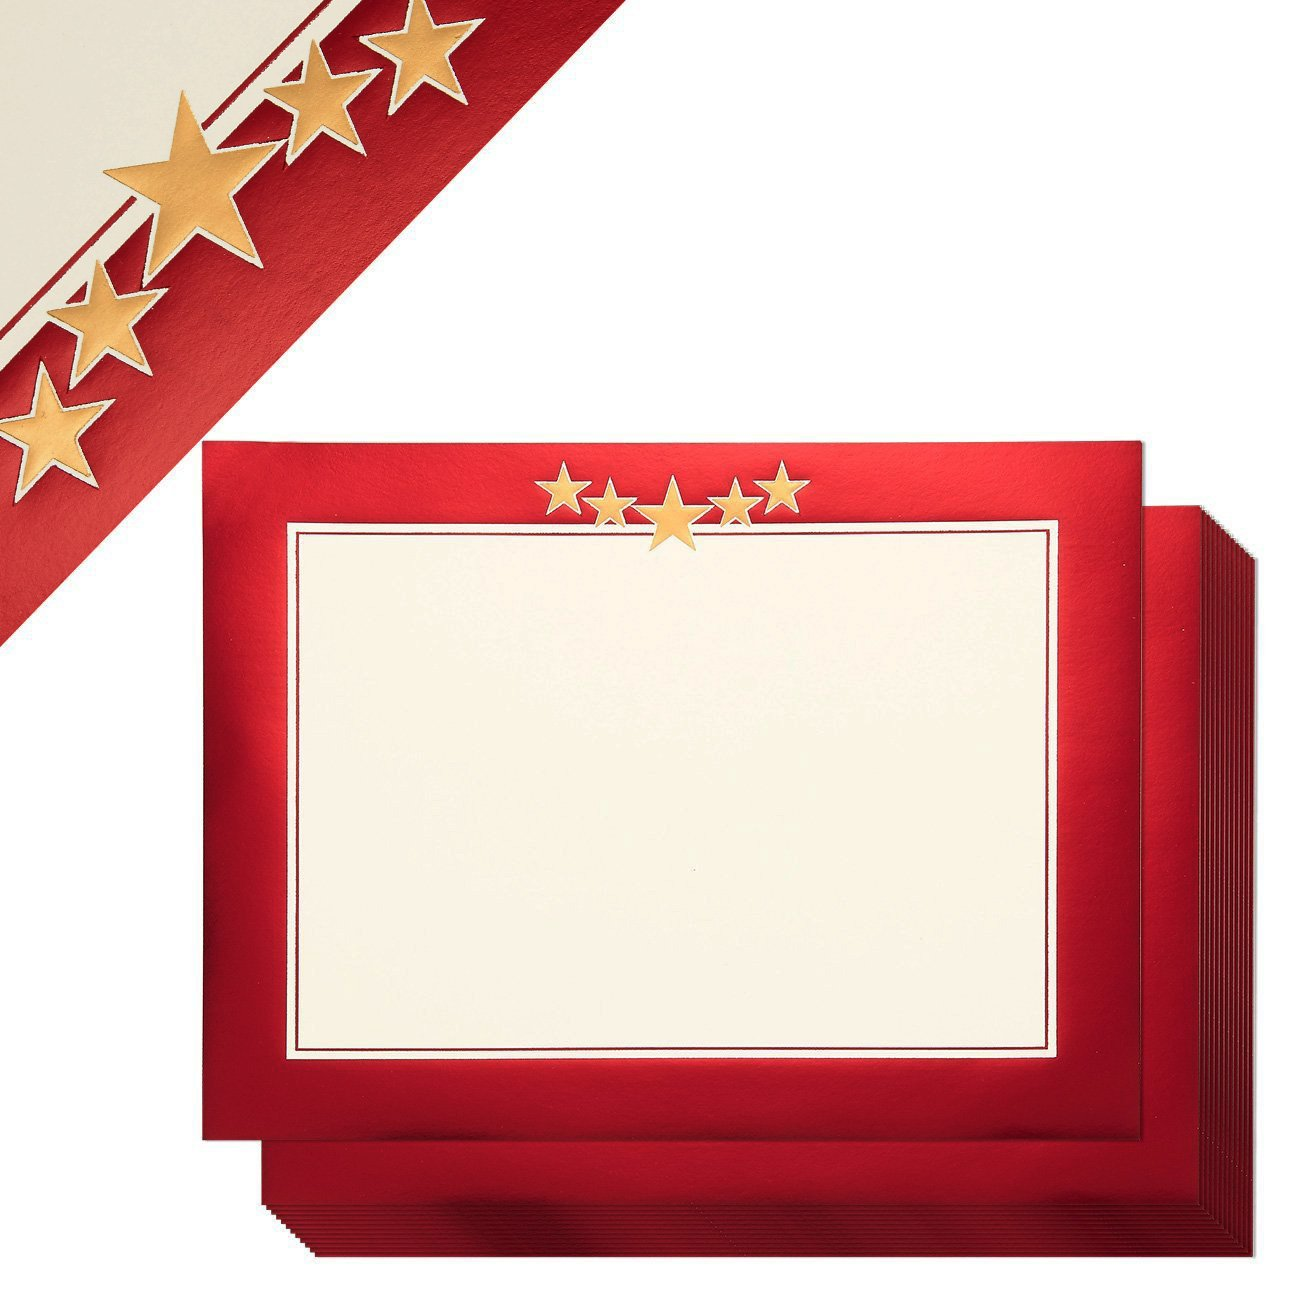 24-Sheet Certificate Paper - Letter Size Blank Award Certificates Paper, Metallic Red Border Specialty Diploma Paper, Laser and Inkjet Printer Friendly, Red, 8.5 x 11 inches